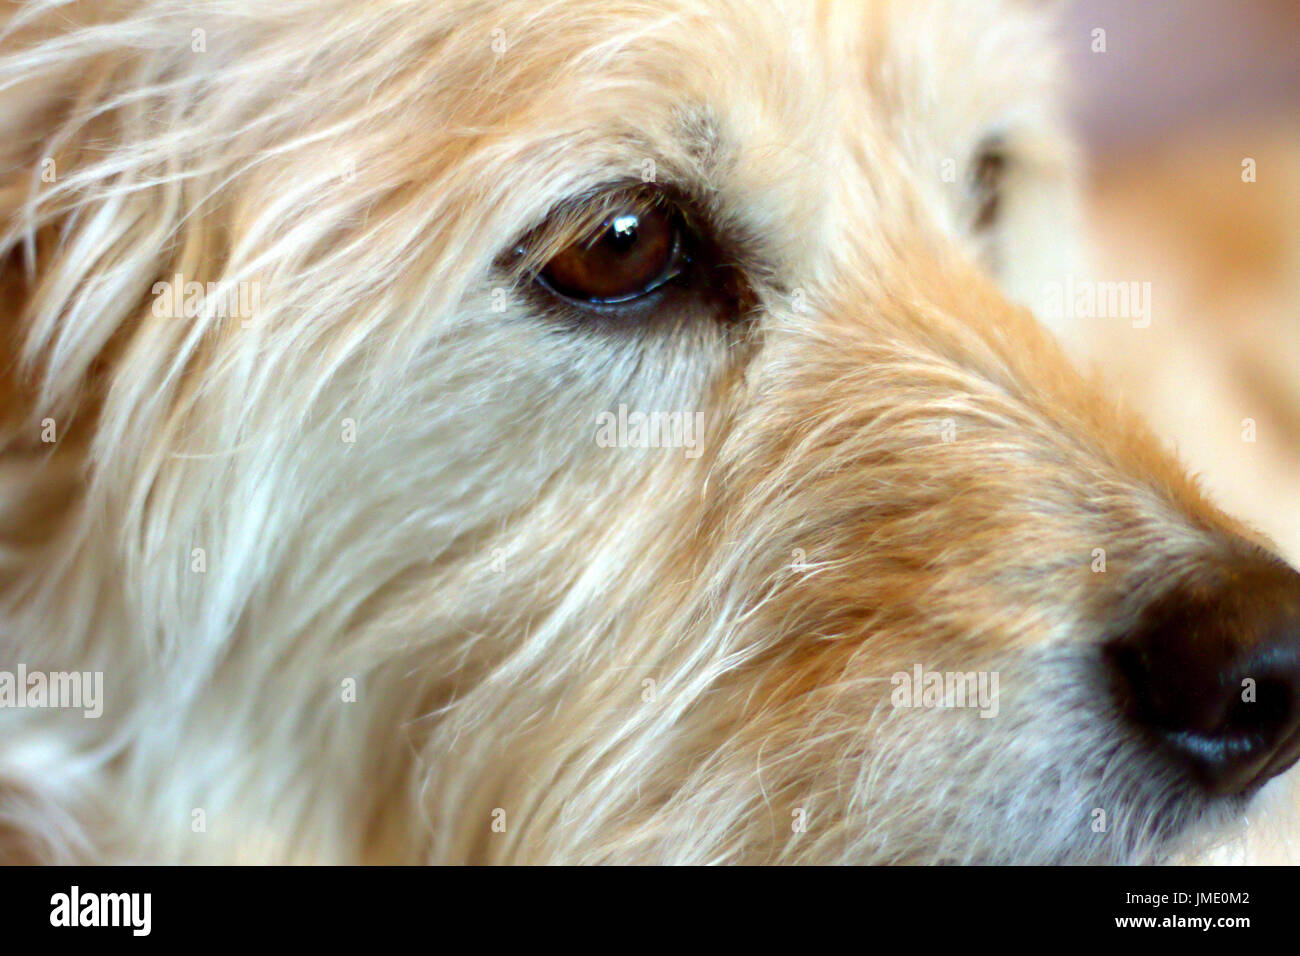 Detail of a Goldendoodle dog's eye and face in profile. - Stock Image